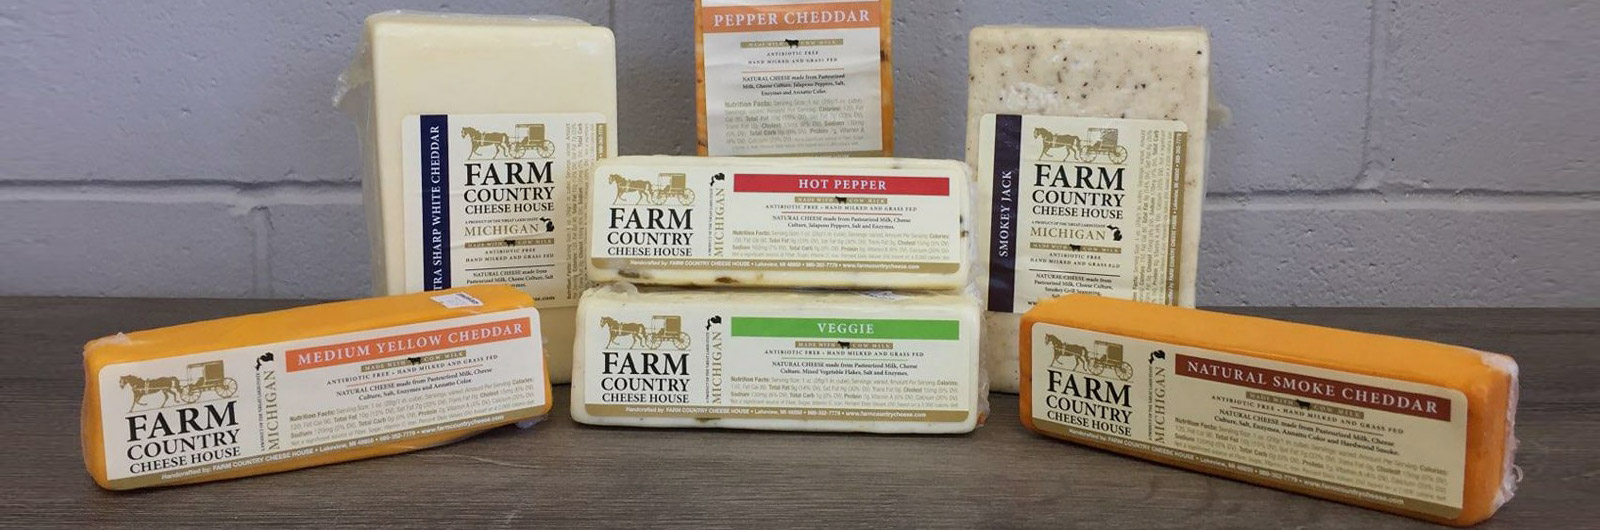 Farm Country Cheese House Lakeview Mi